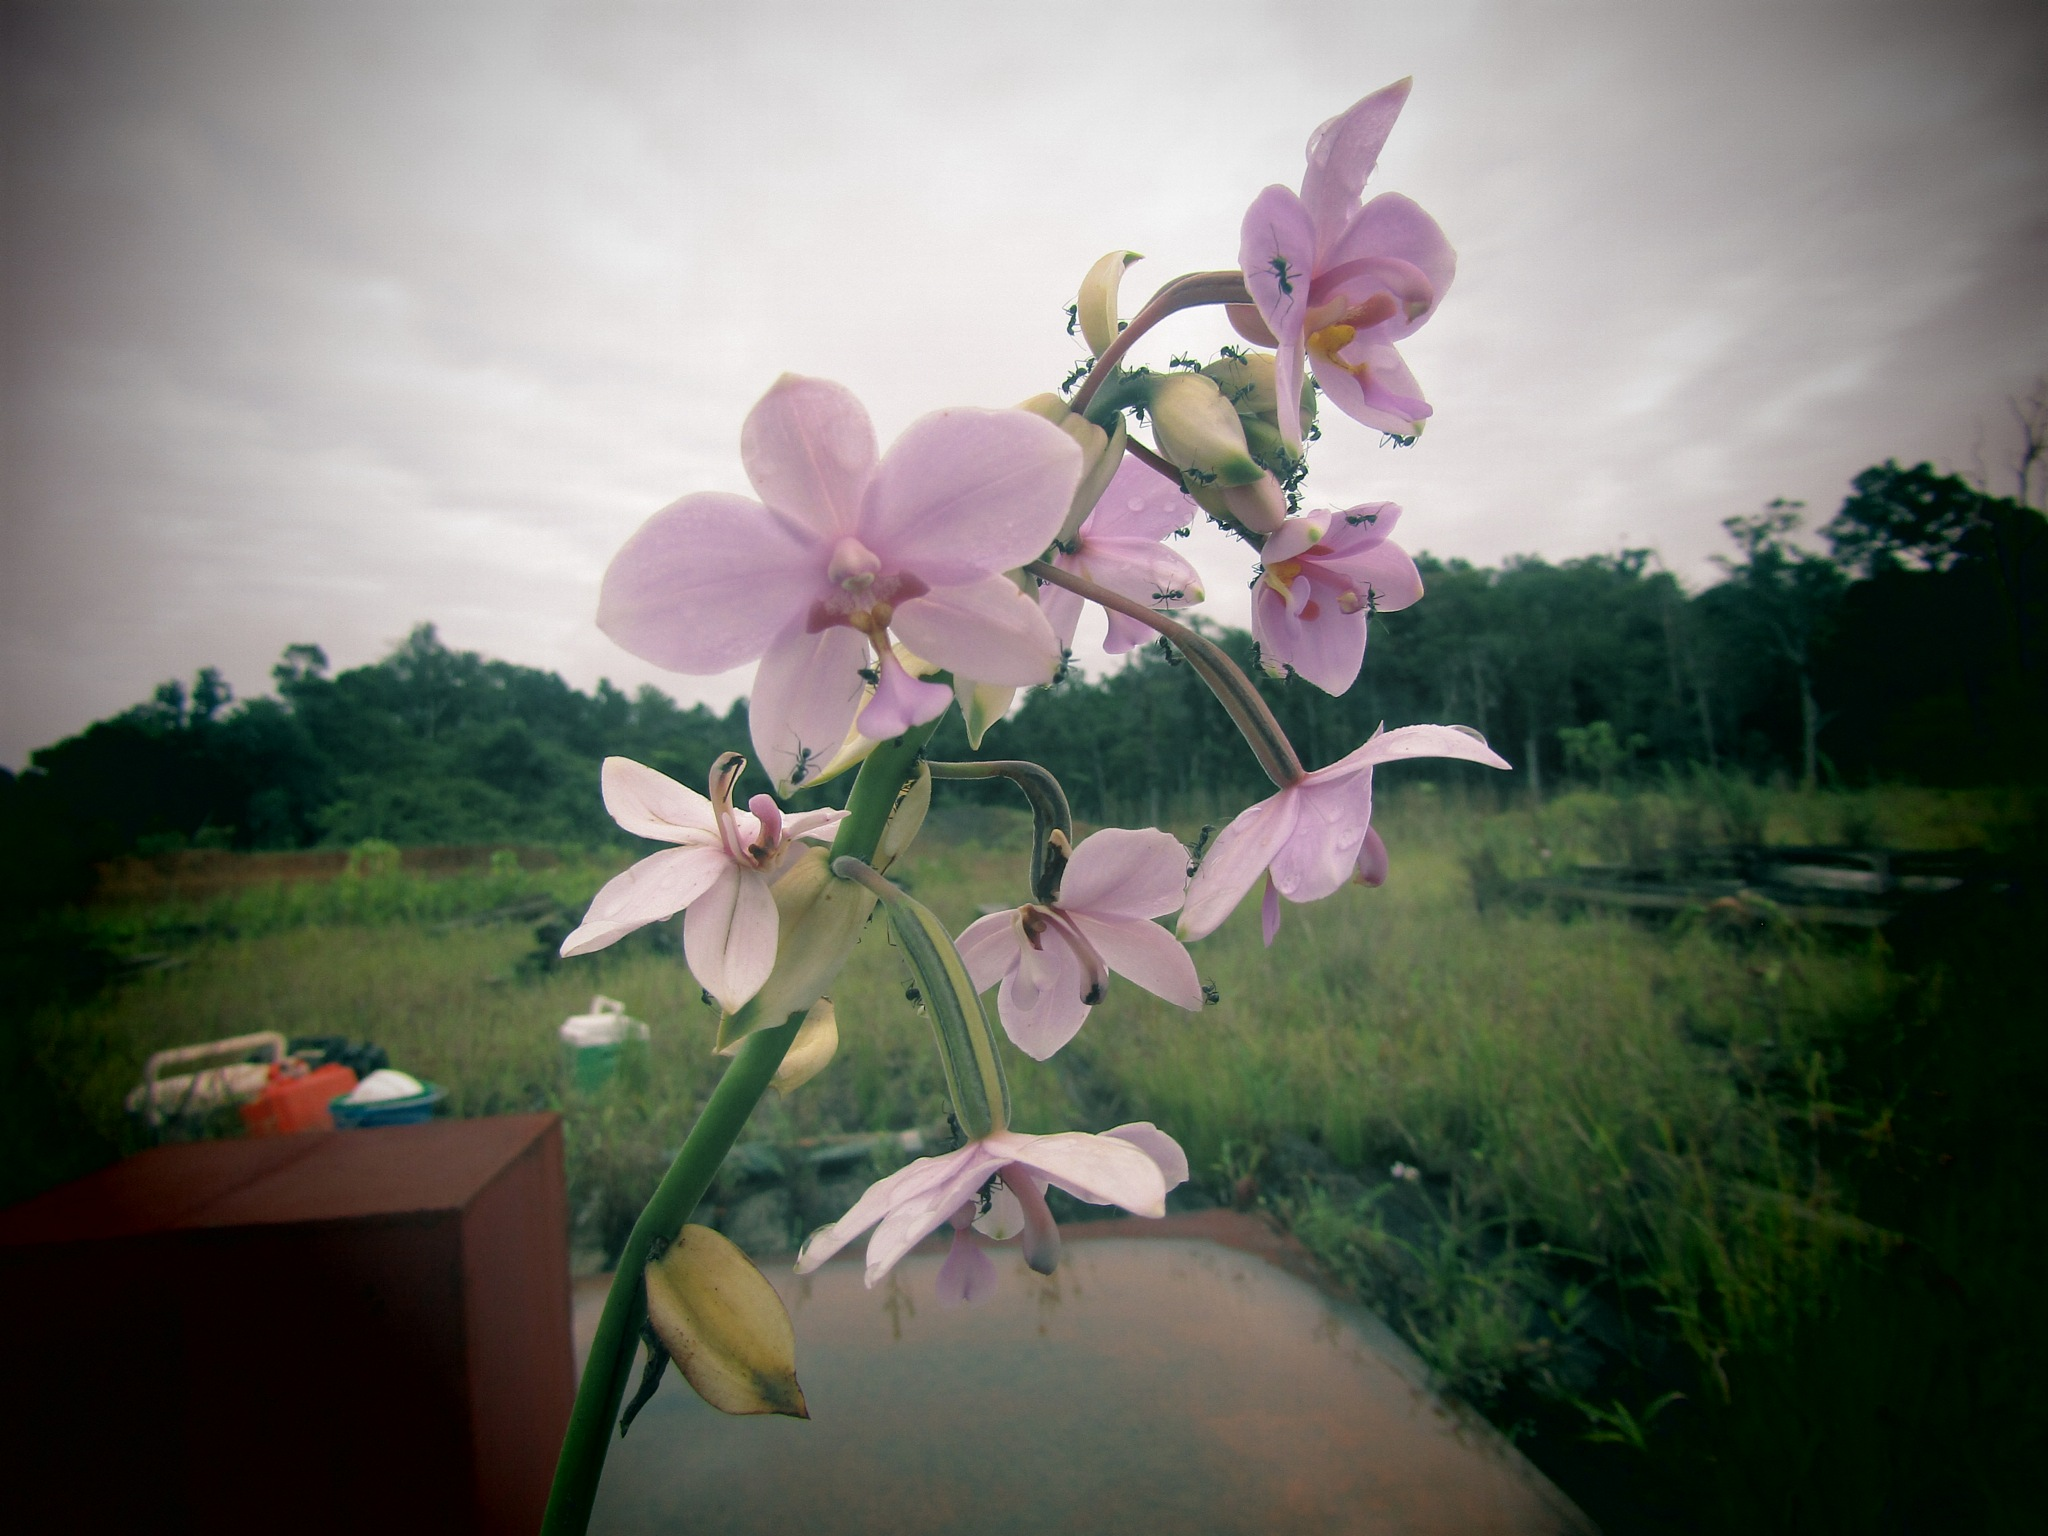 Ground Orchid by Ghee_Anas